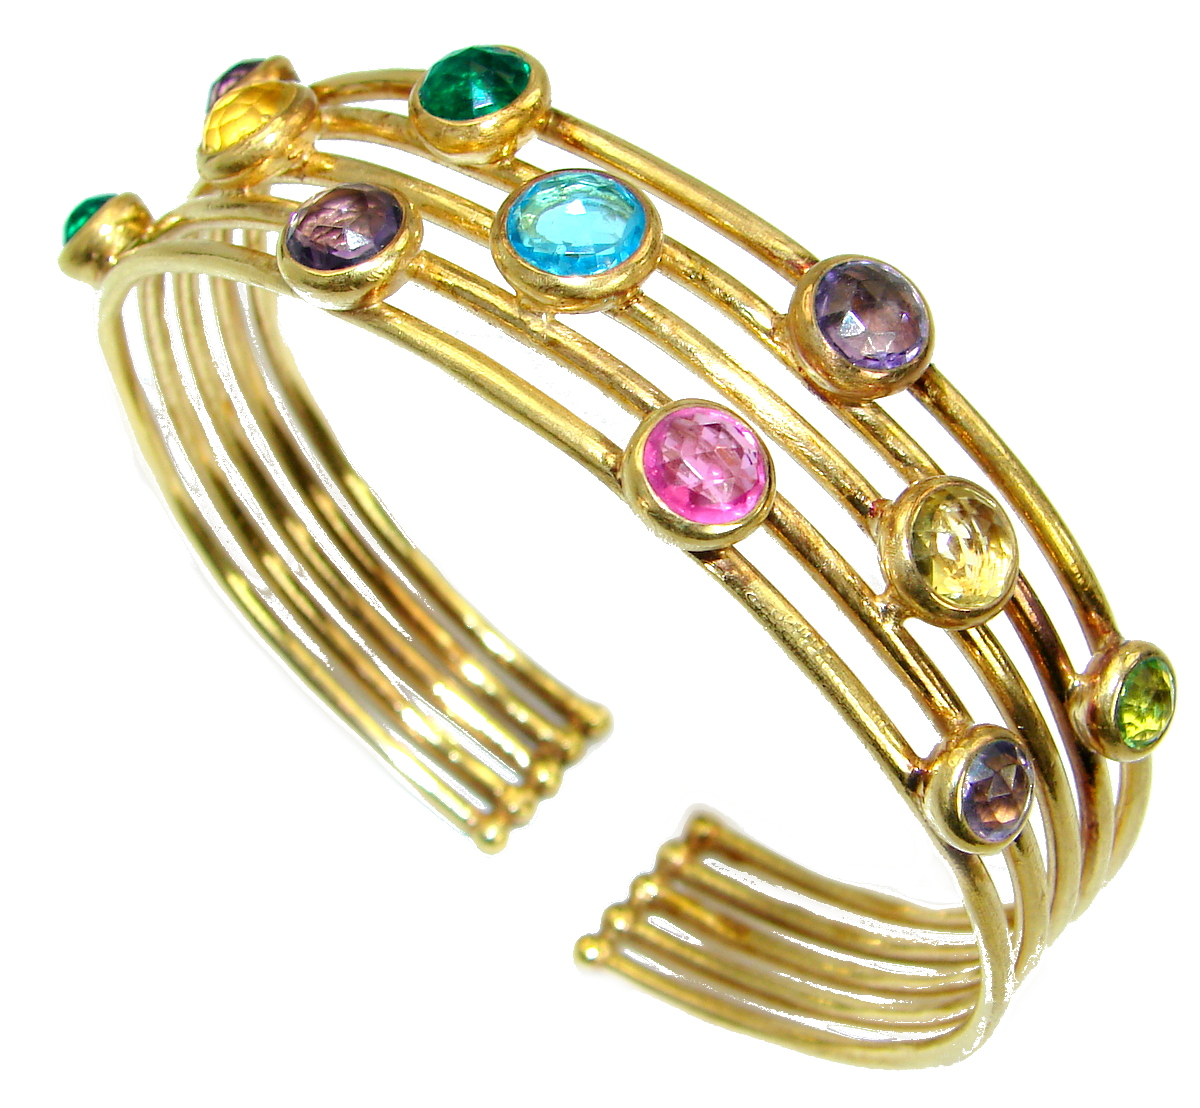 Rainbow Waves 14K Gold over .925 Sterling Silver handcrafted Bracelet / Cuff